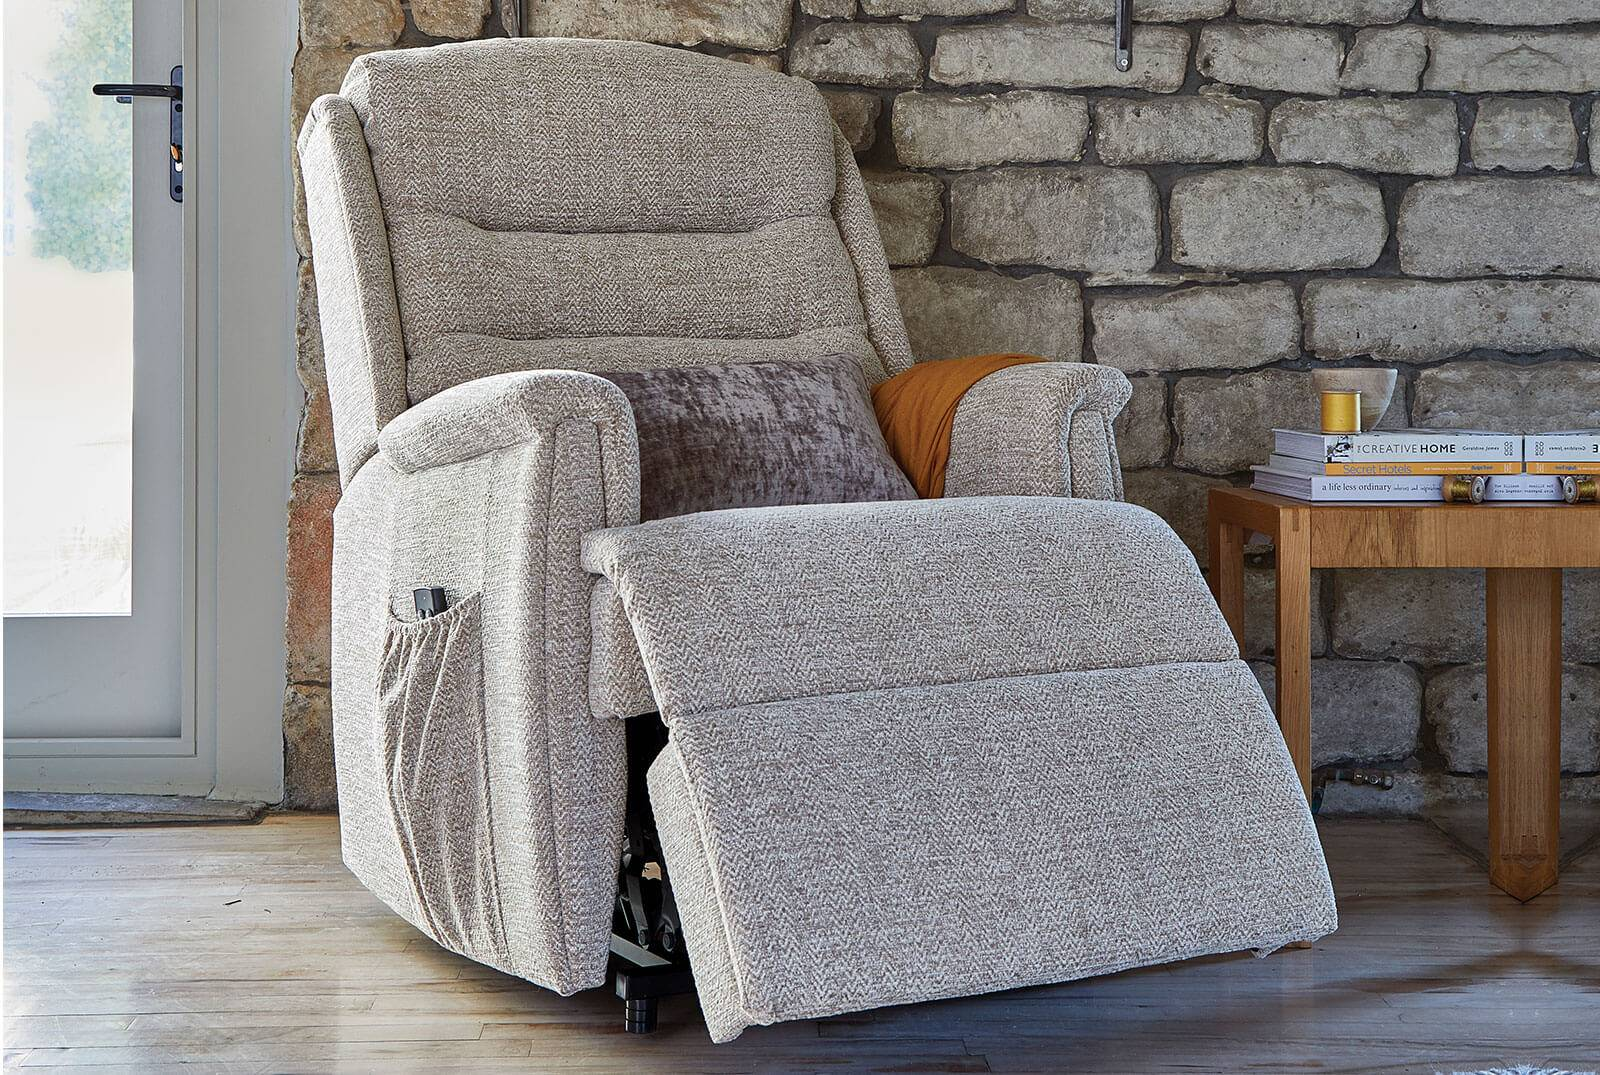 Ripley Single Motor Riser Recliner in Canilo Alpine